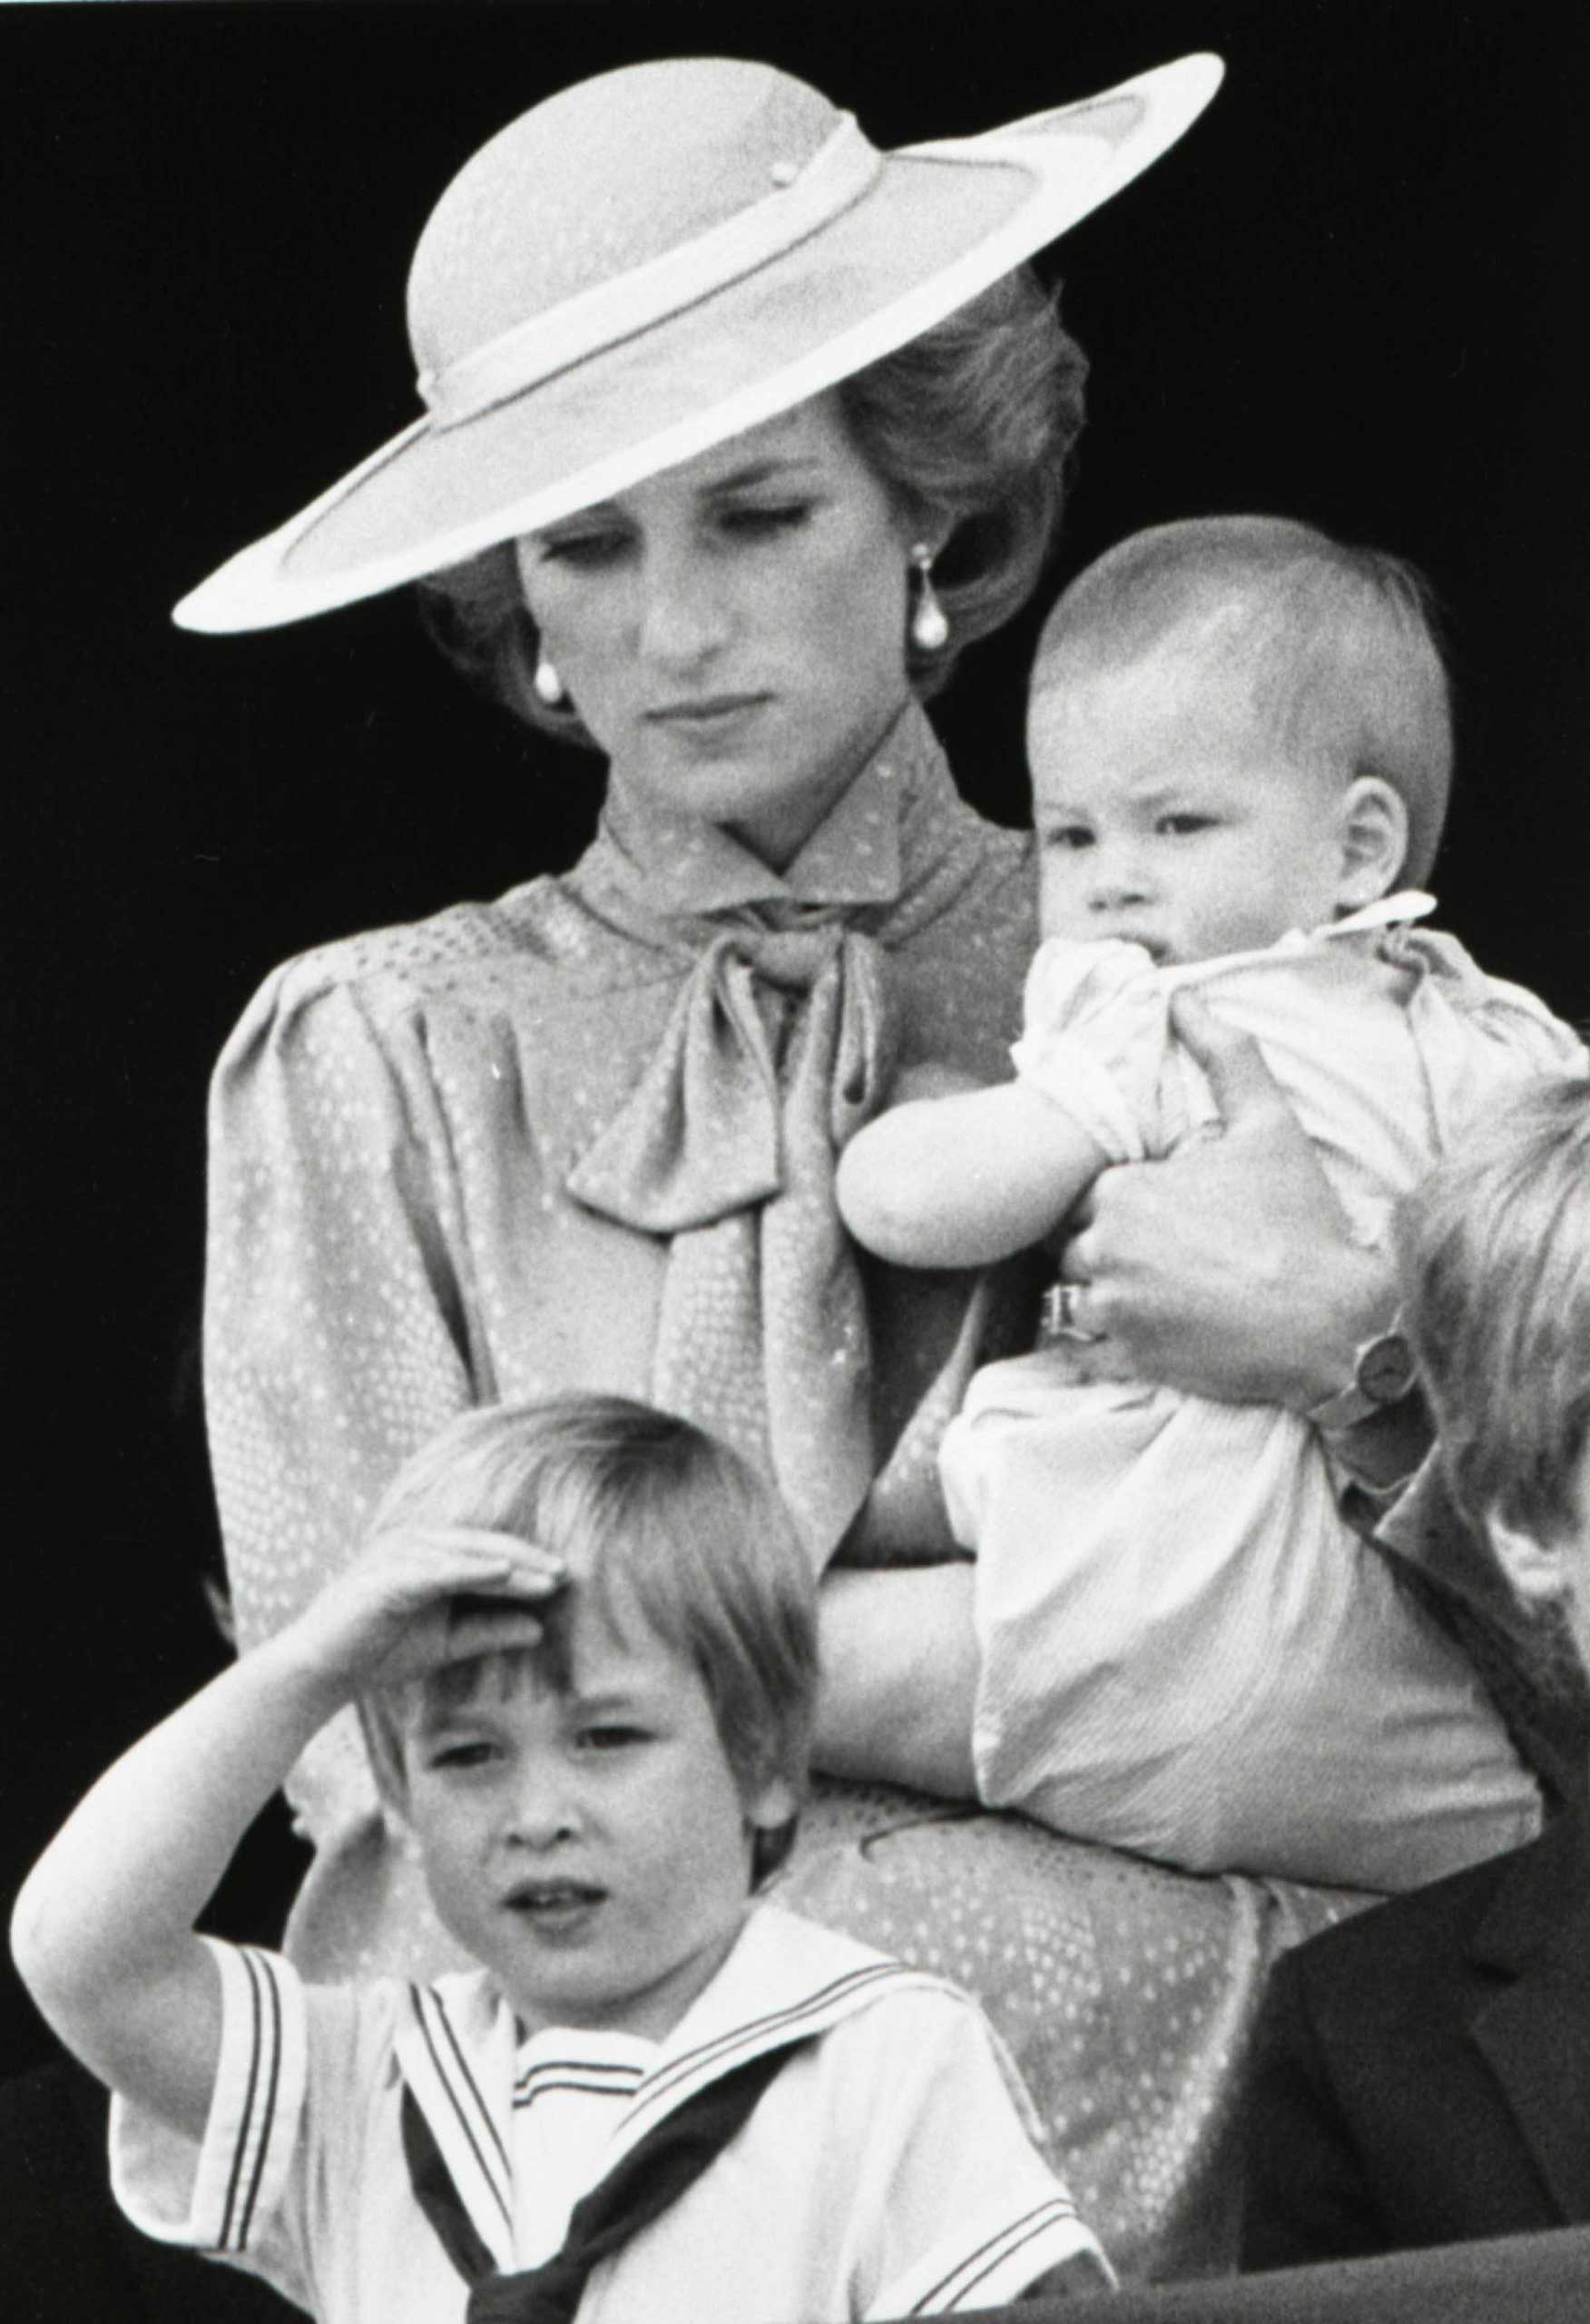 Prince Harry, aged 9 months, watches a military parade with his mother Diana, Princess of Wales, and brother William, in 1985.